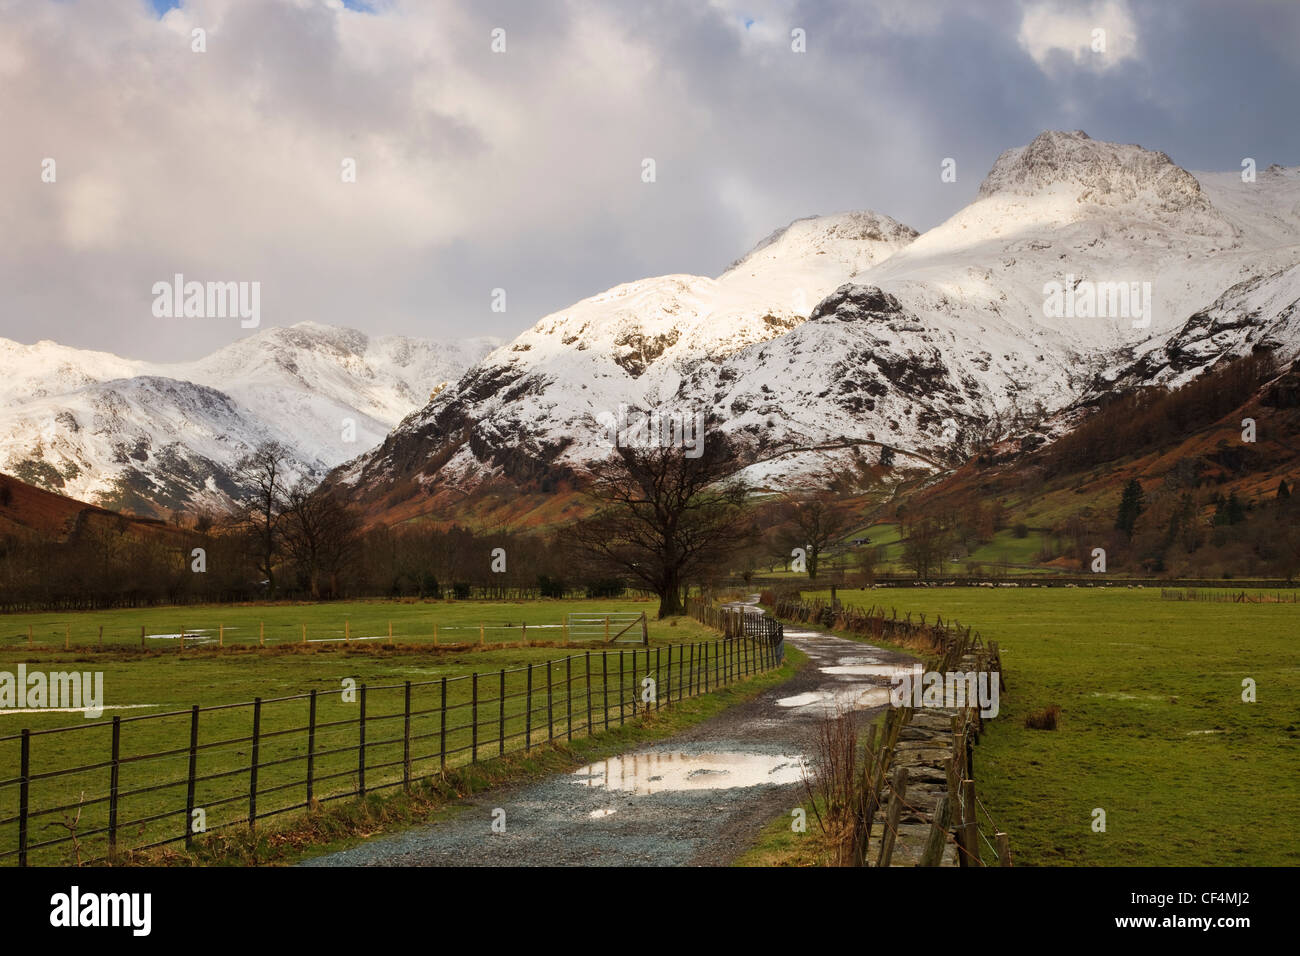 Puddles of water on a farm track leading towards the snow covered Langdale Pikes. - Stock Image